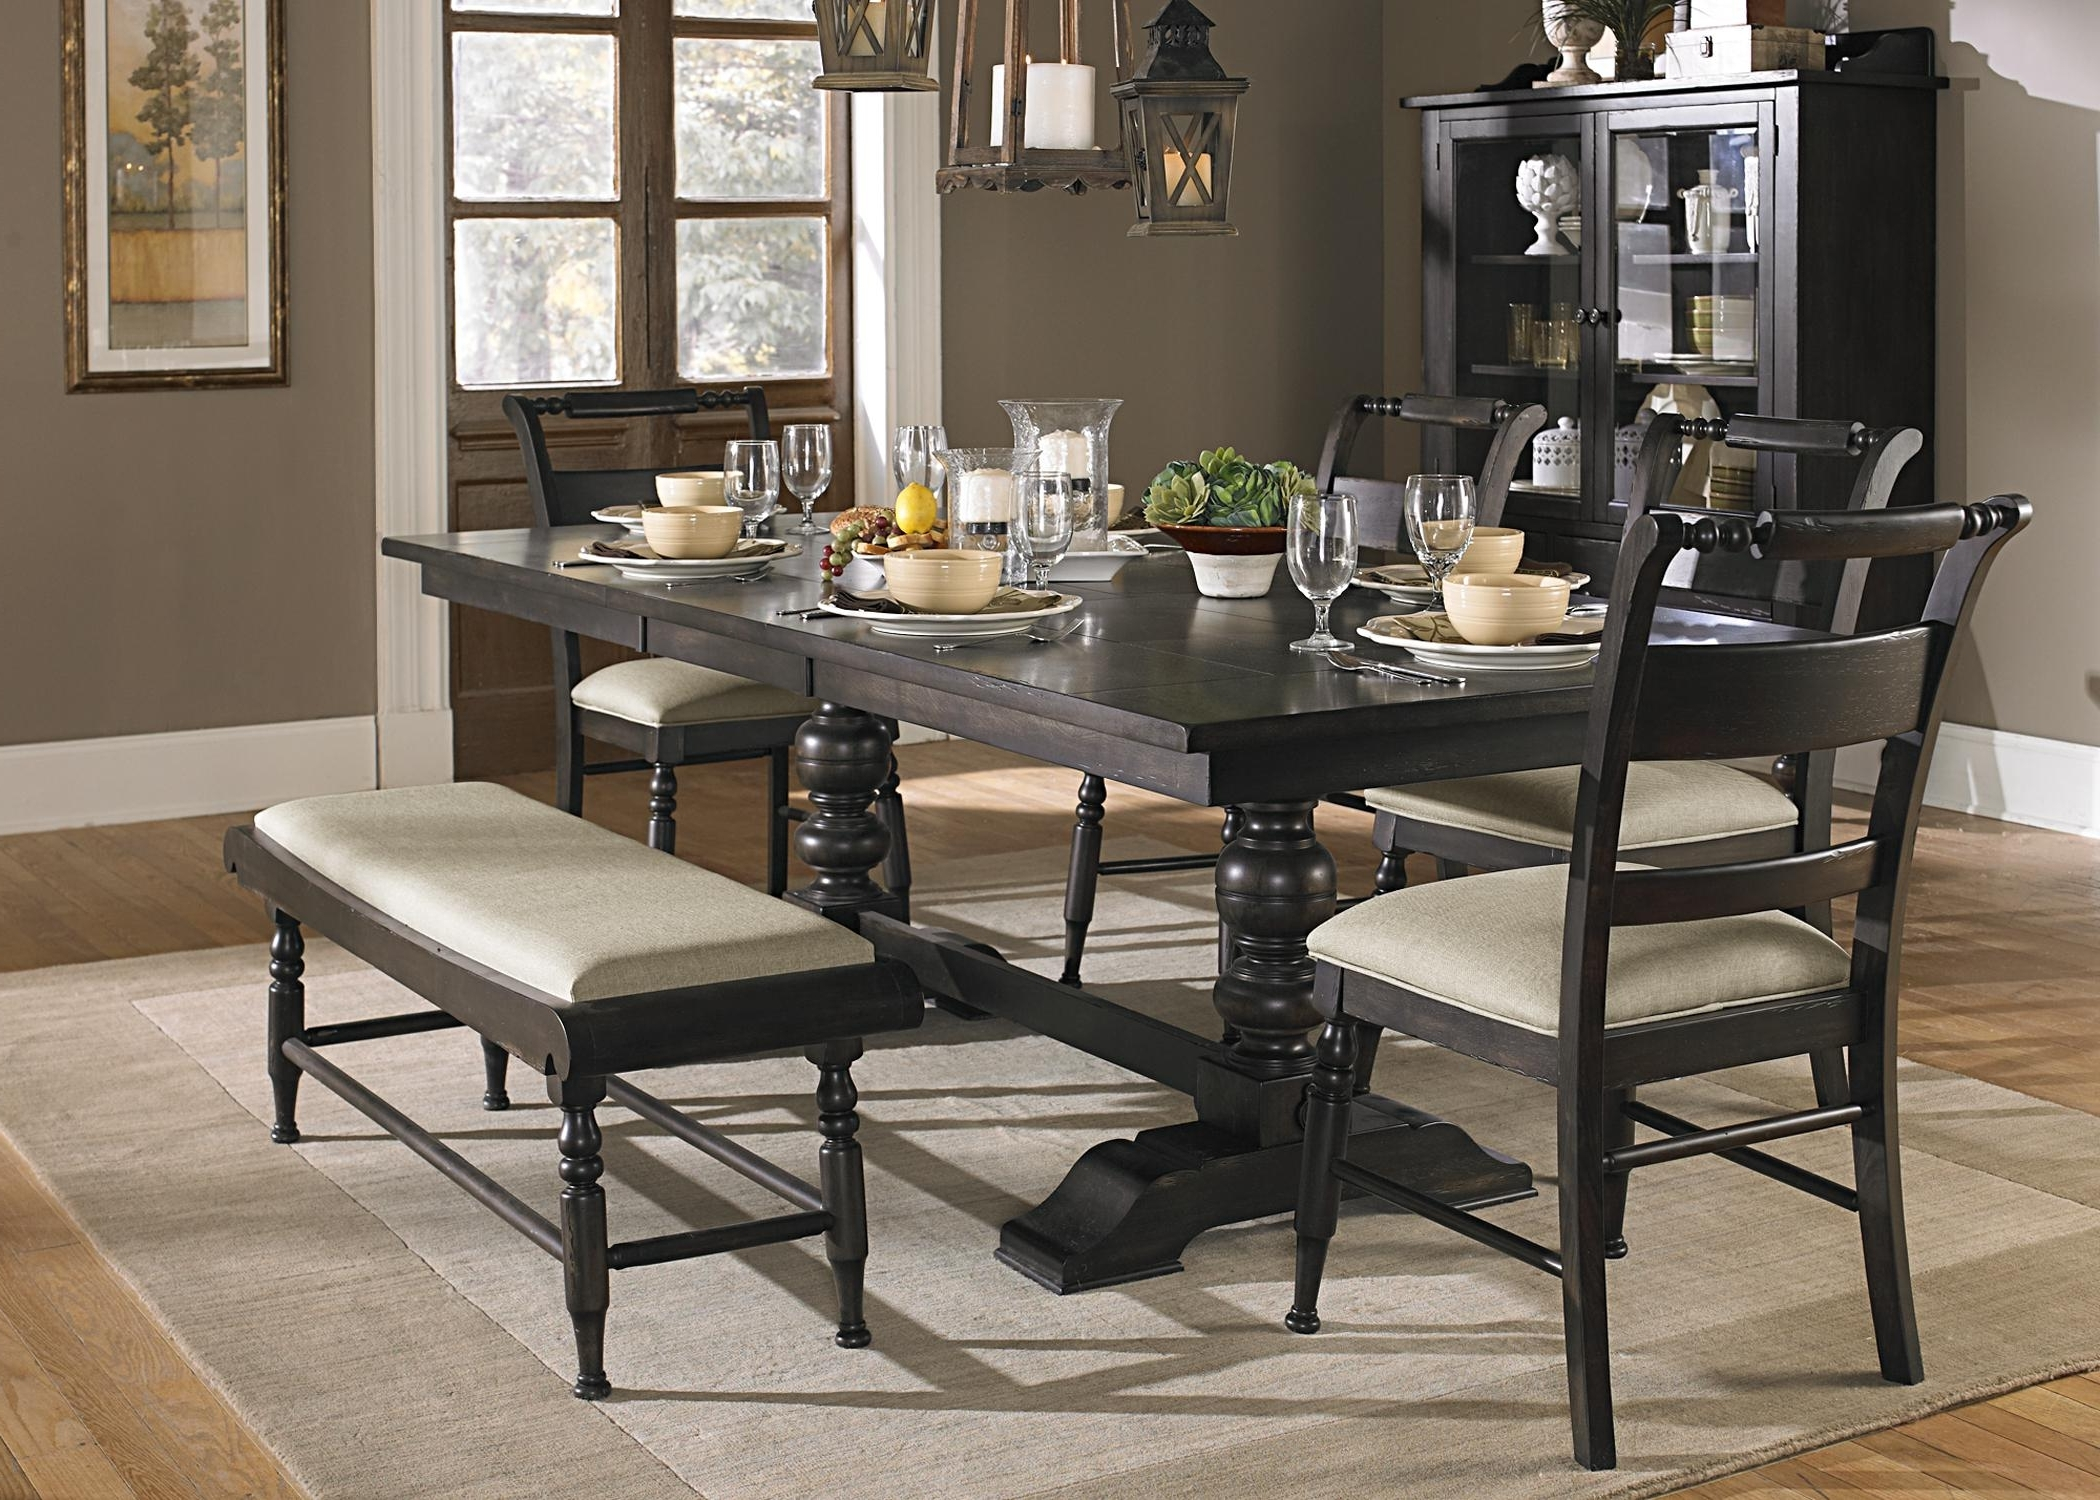 Widely Used Sofa Chairs With Dining Table With Regard To Liberty Furniture Whitney 7 Piece Trestle Dining Room Table Set (View 16 of 20)